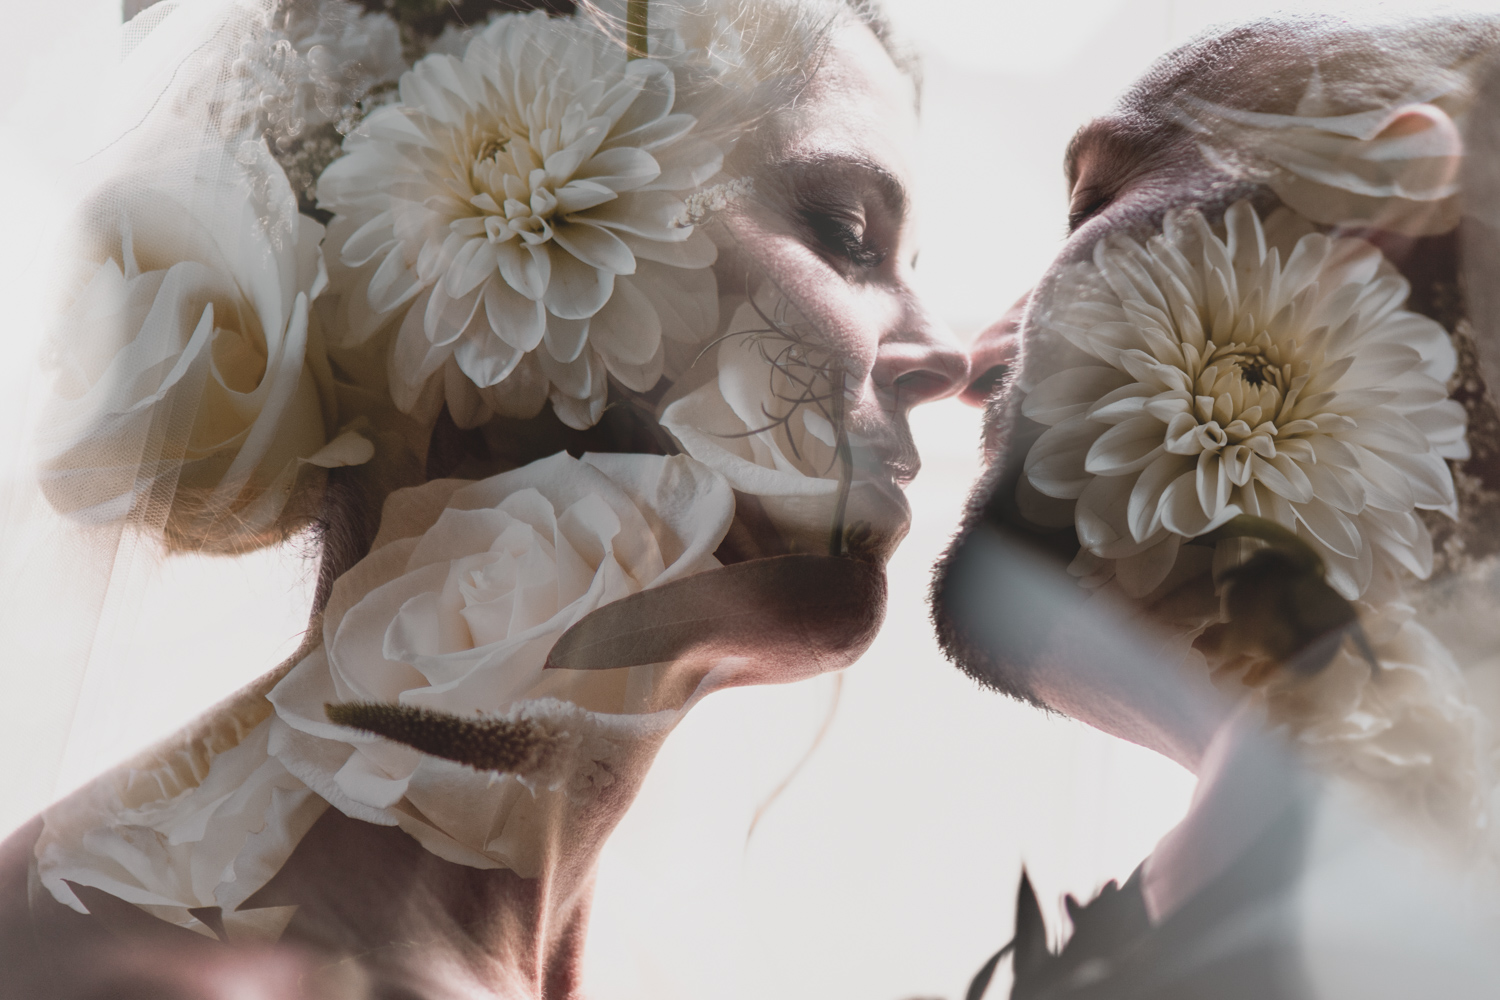 A double exposure of the bride and groom, a wedding photo where their bouquet is overlaid with a photo of them kissing, taken the day of their wedding in Ottawa.